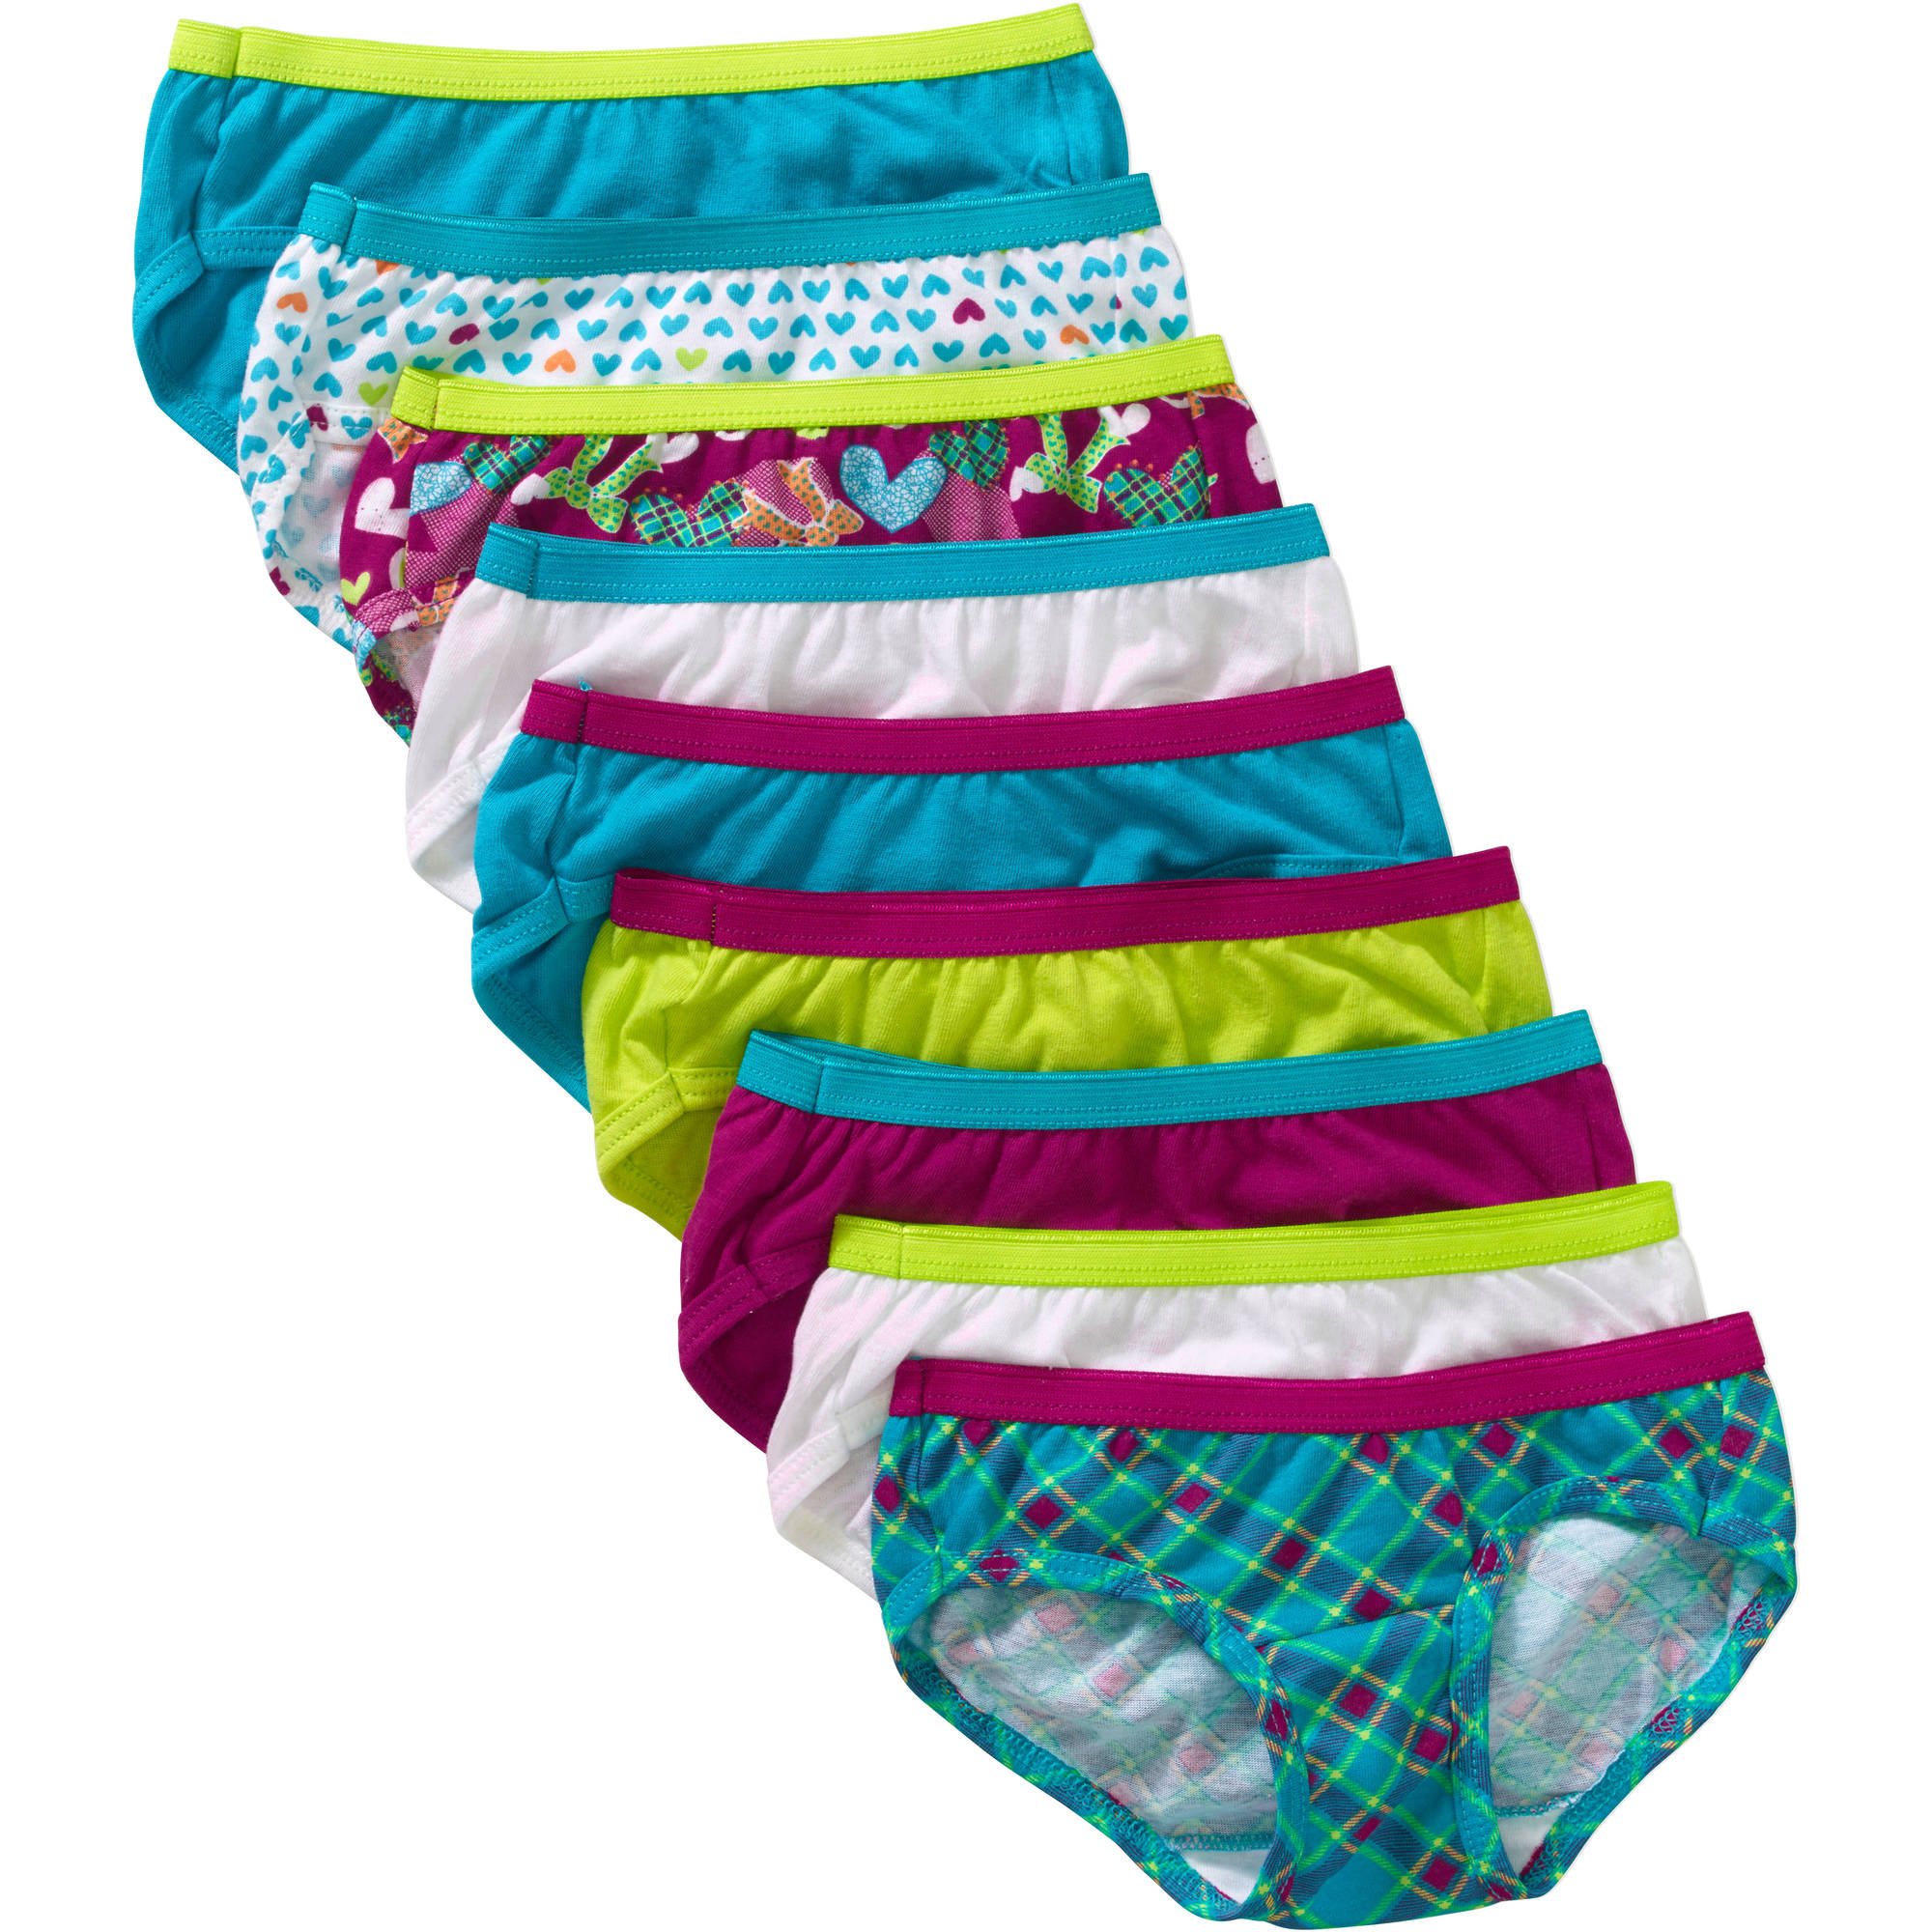 Hanes - Girls' Assorted Hipster Panties, 9-Pack, Colors May Vary